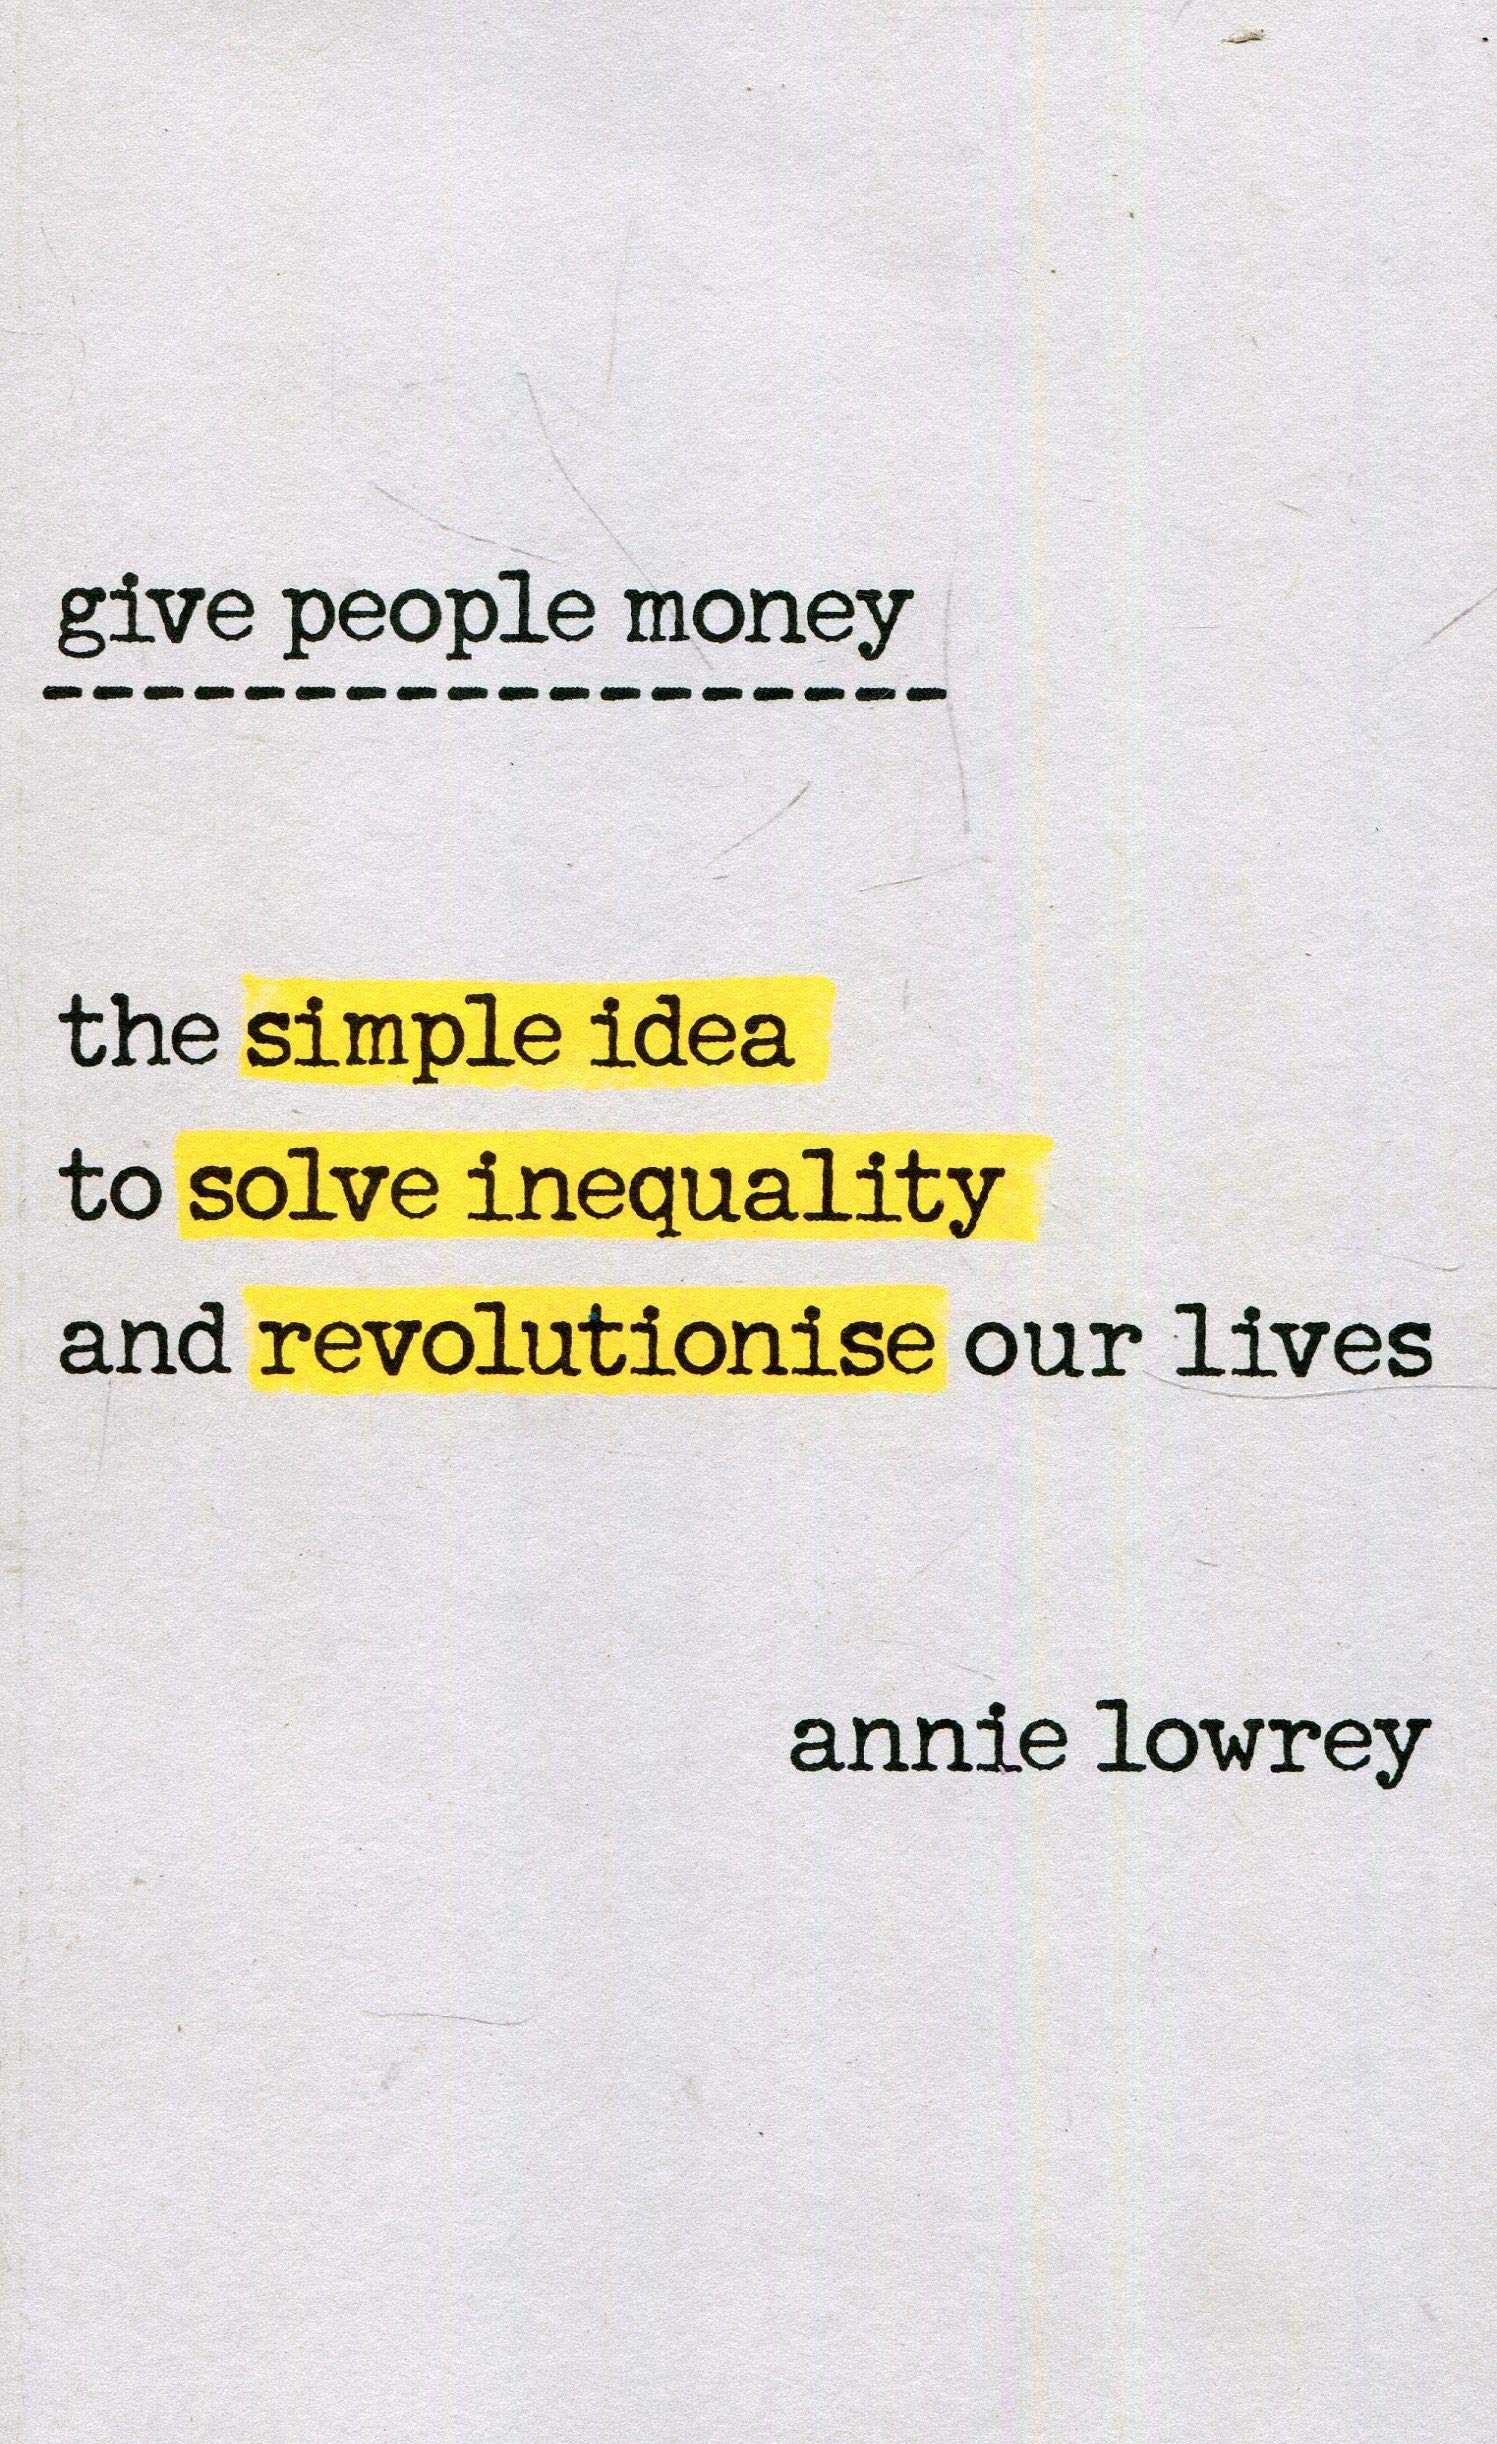 Give People Money: The Simple Idea to Solve Inequality and Revolutionise our Lives, reviewed